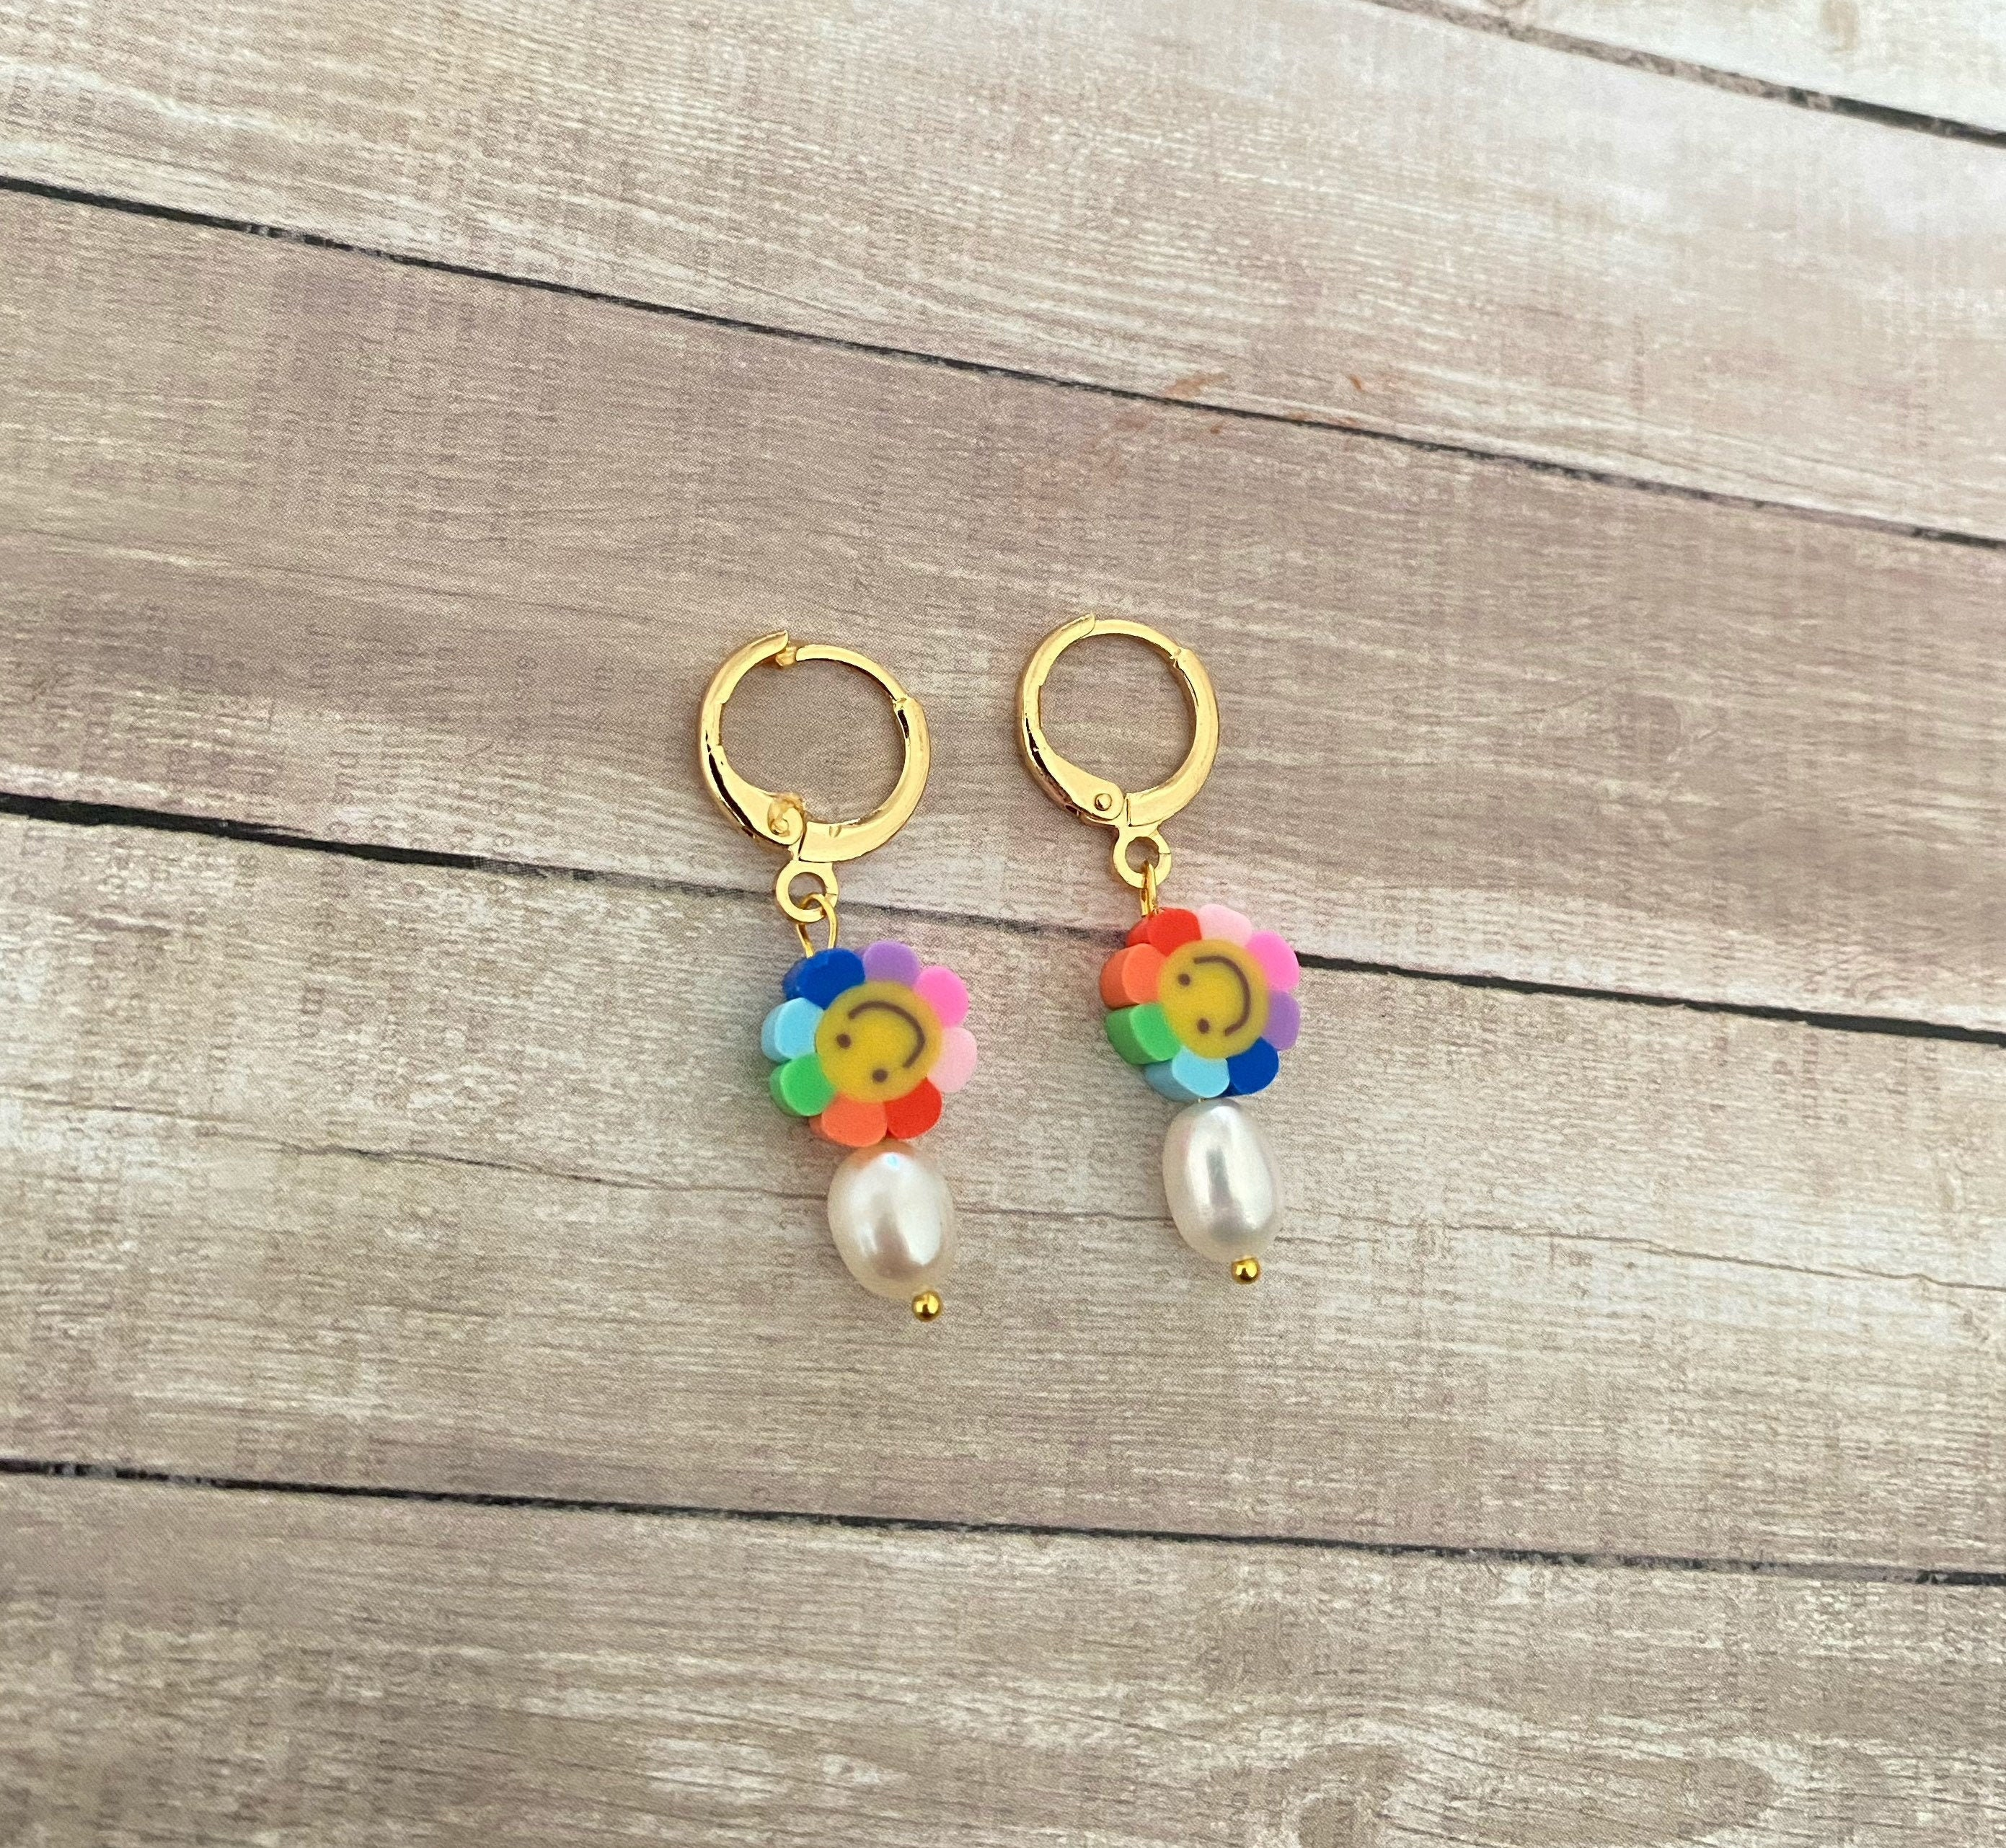 Smiley Face Hoops, Smiley Face Earrings, Gold Charm Hoops, Charm Earrings, Rainbow Earrings, Rainbow Jewelry, Happy Face Hoops